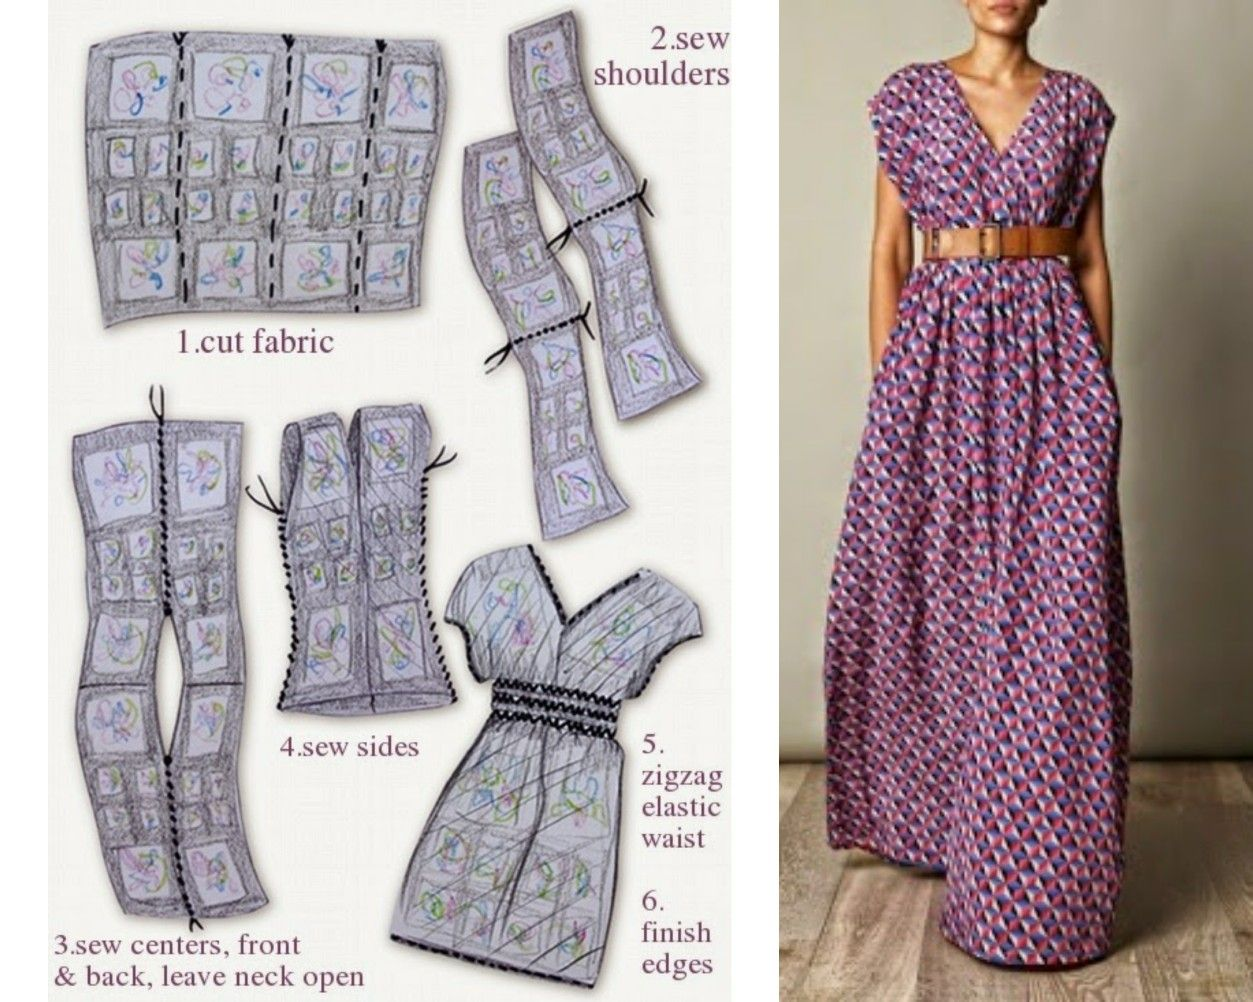 Idee Cucito Per Principianti : Robe facile à faire cest juste 4 rectangles patterns sewing